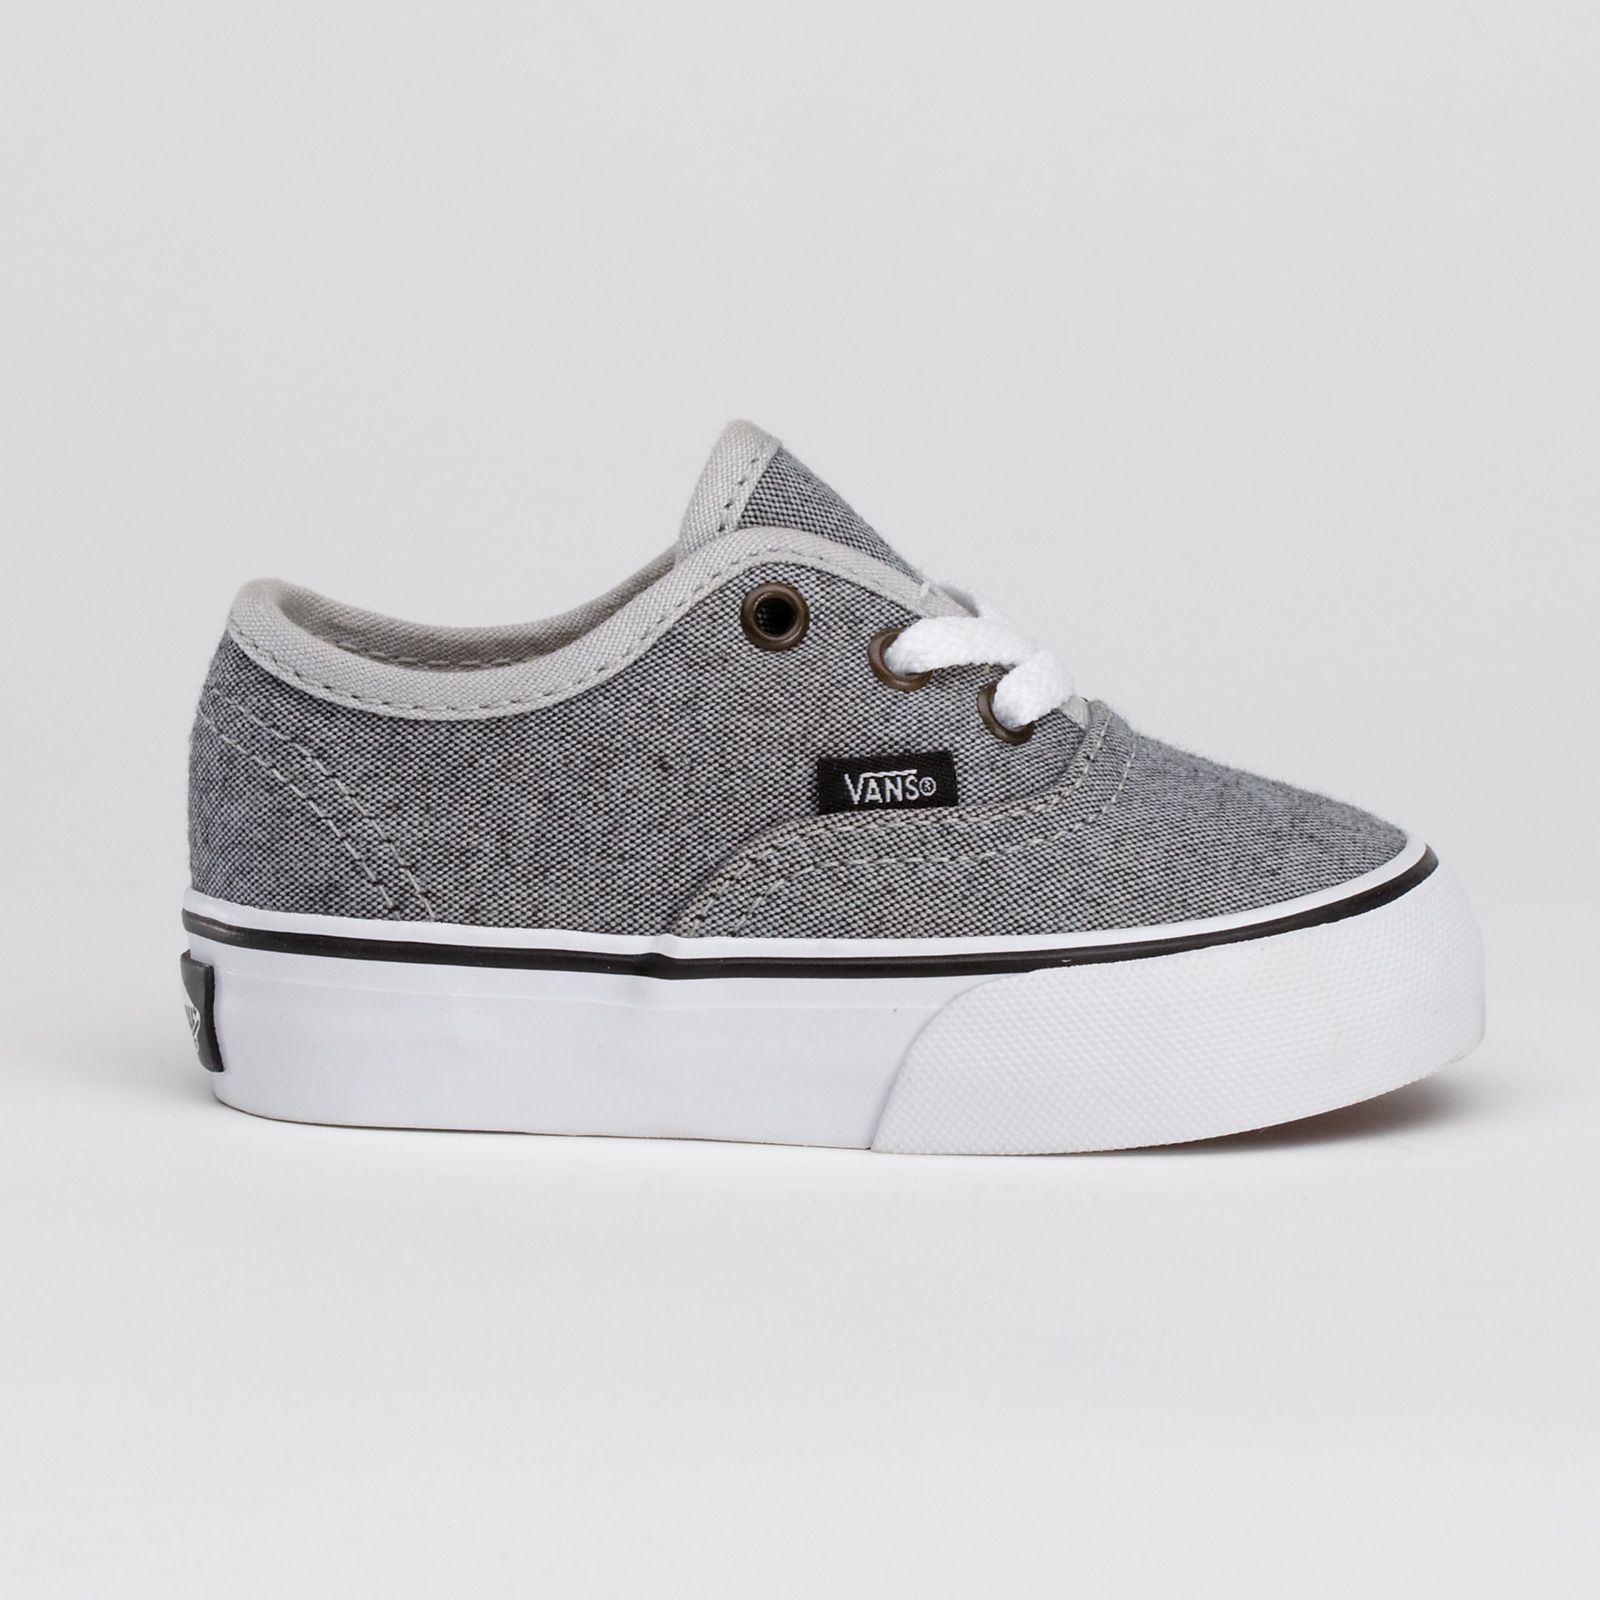 Newborn Shoes Vans Baby Vans For The Shoe Collection Baby Everything Baby